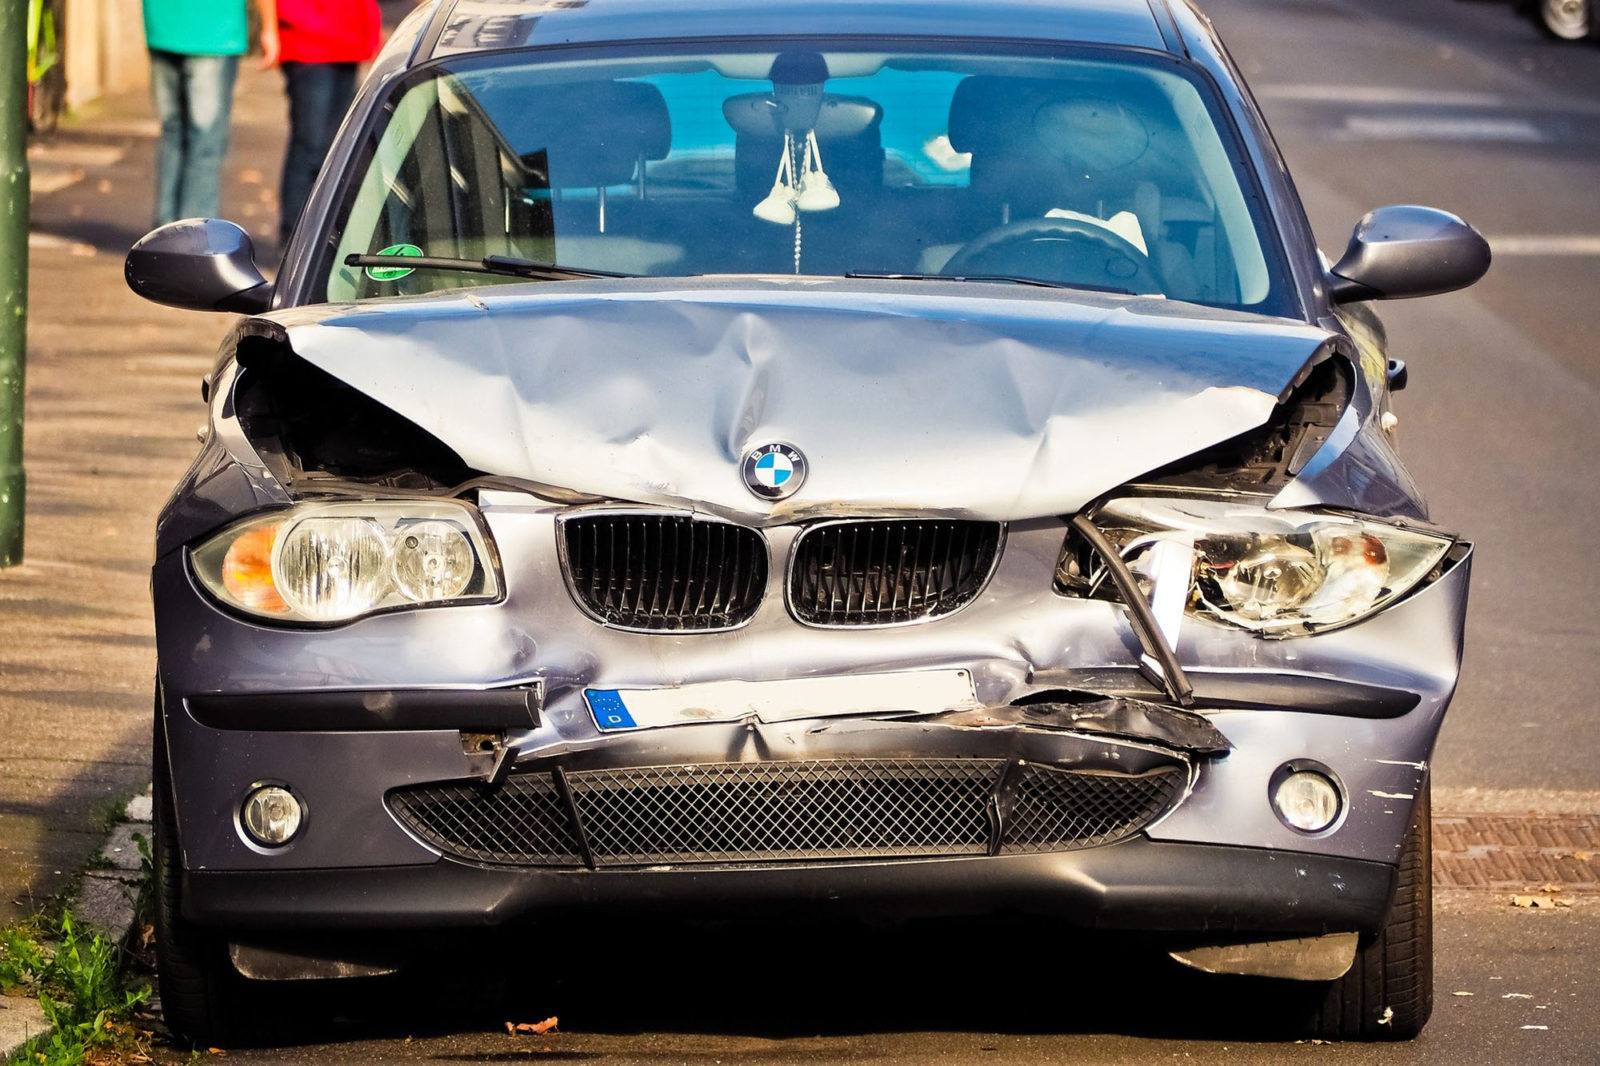 Front view of damaged car after accident